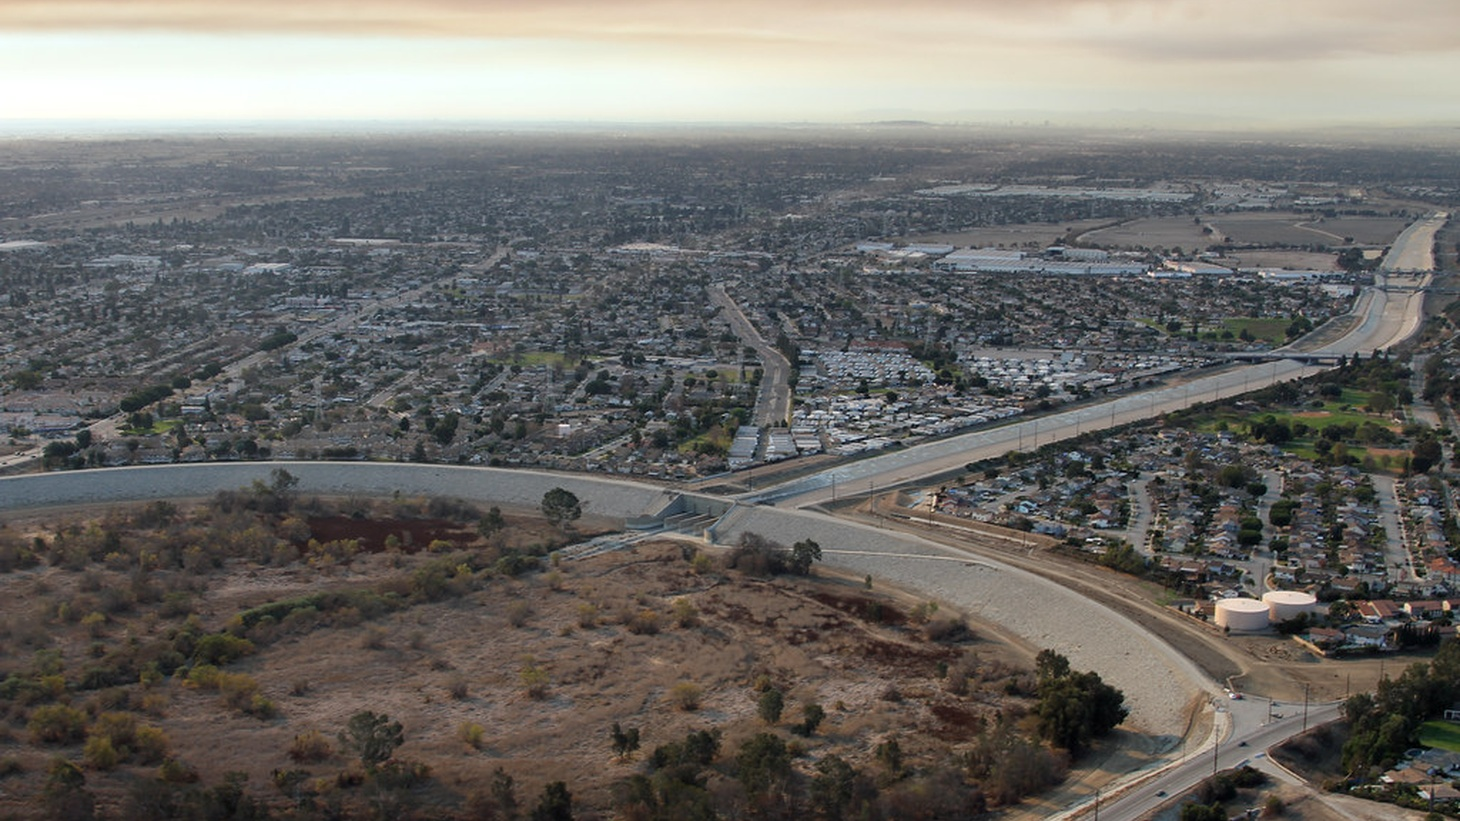 """California's Whittier Narrows Dam is more than 50 feet tall, and is part of the Los Angeles County Drainage Area flood control system. However, """"Deep Water"""" author Jacques Leslie says many of the state's dams are old and need repairs."""